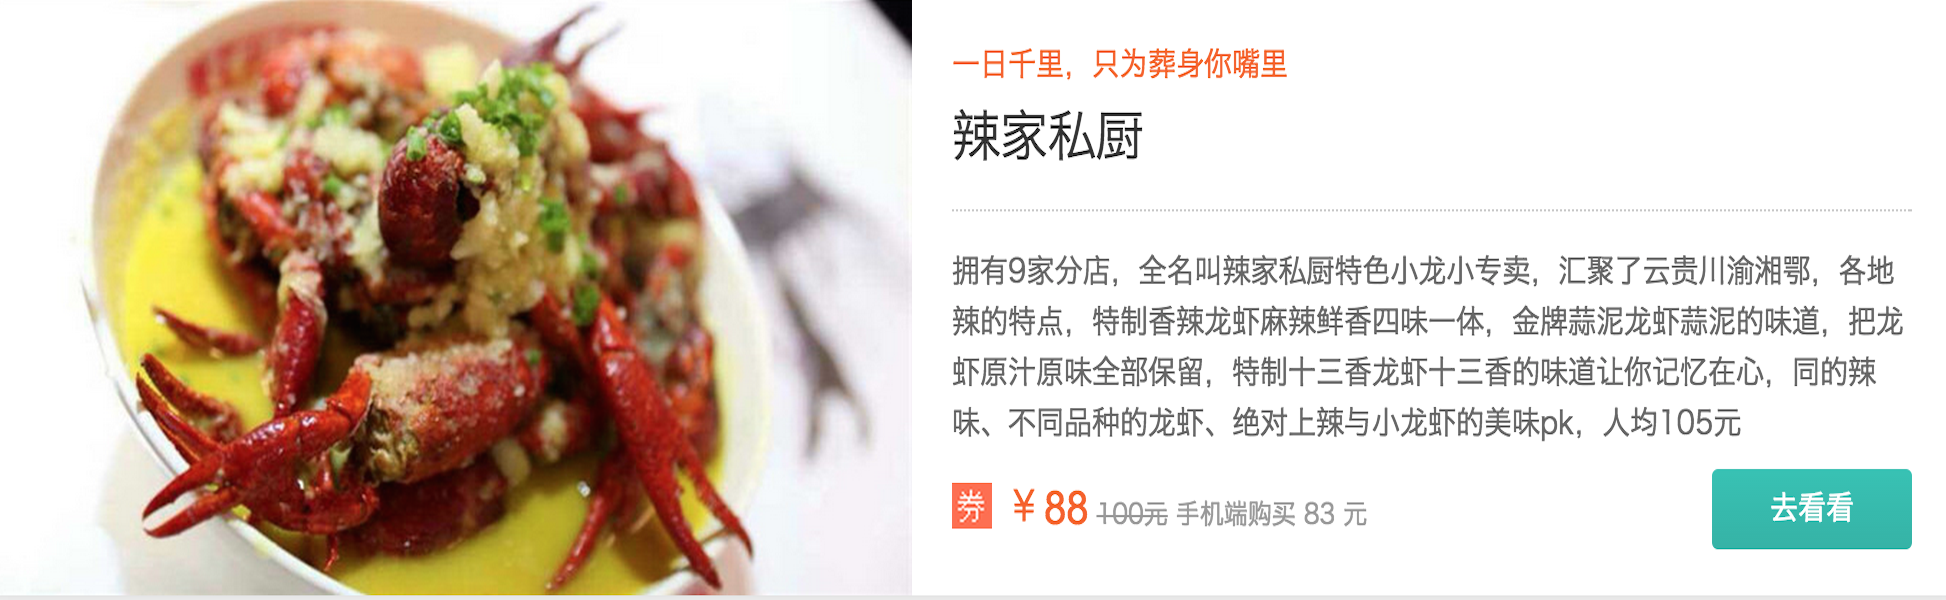 A crayfish special at daily-deal site Meituan.com.